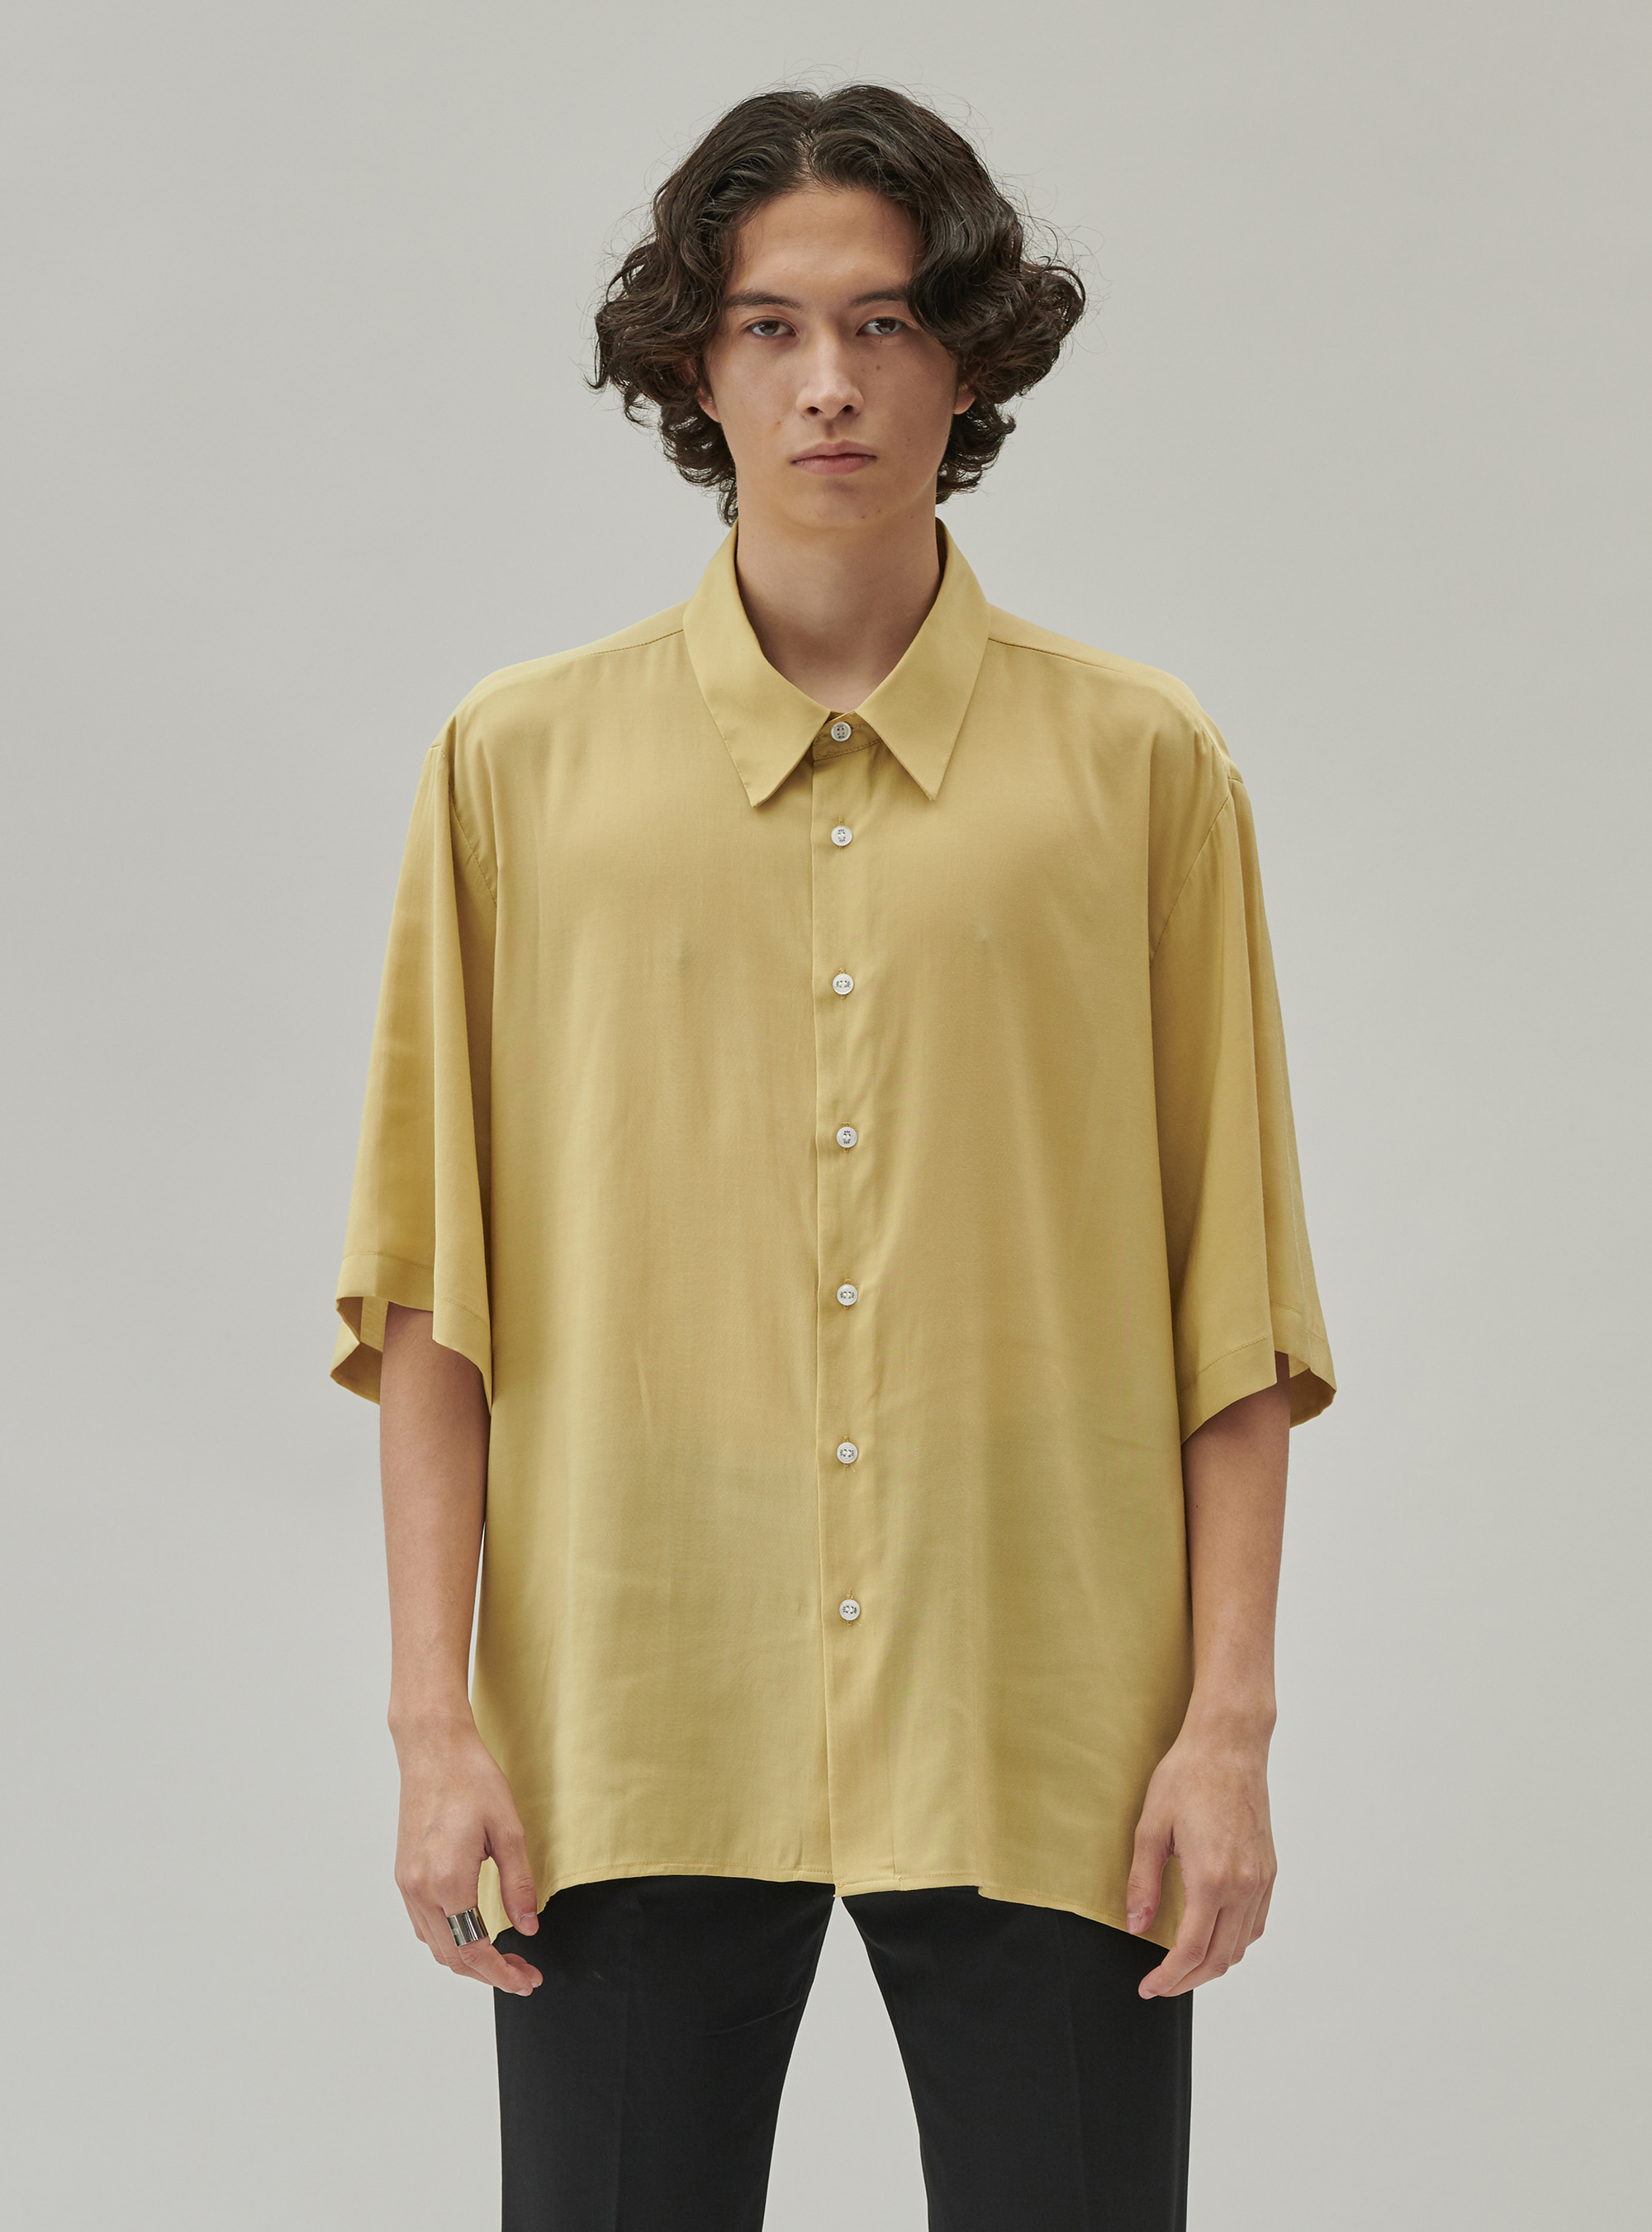 BAMBOO SHIRT YELLOW